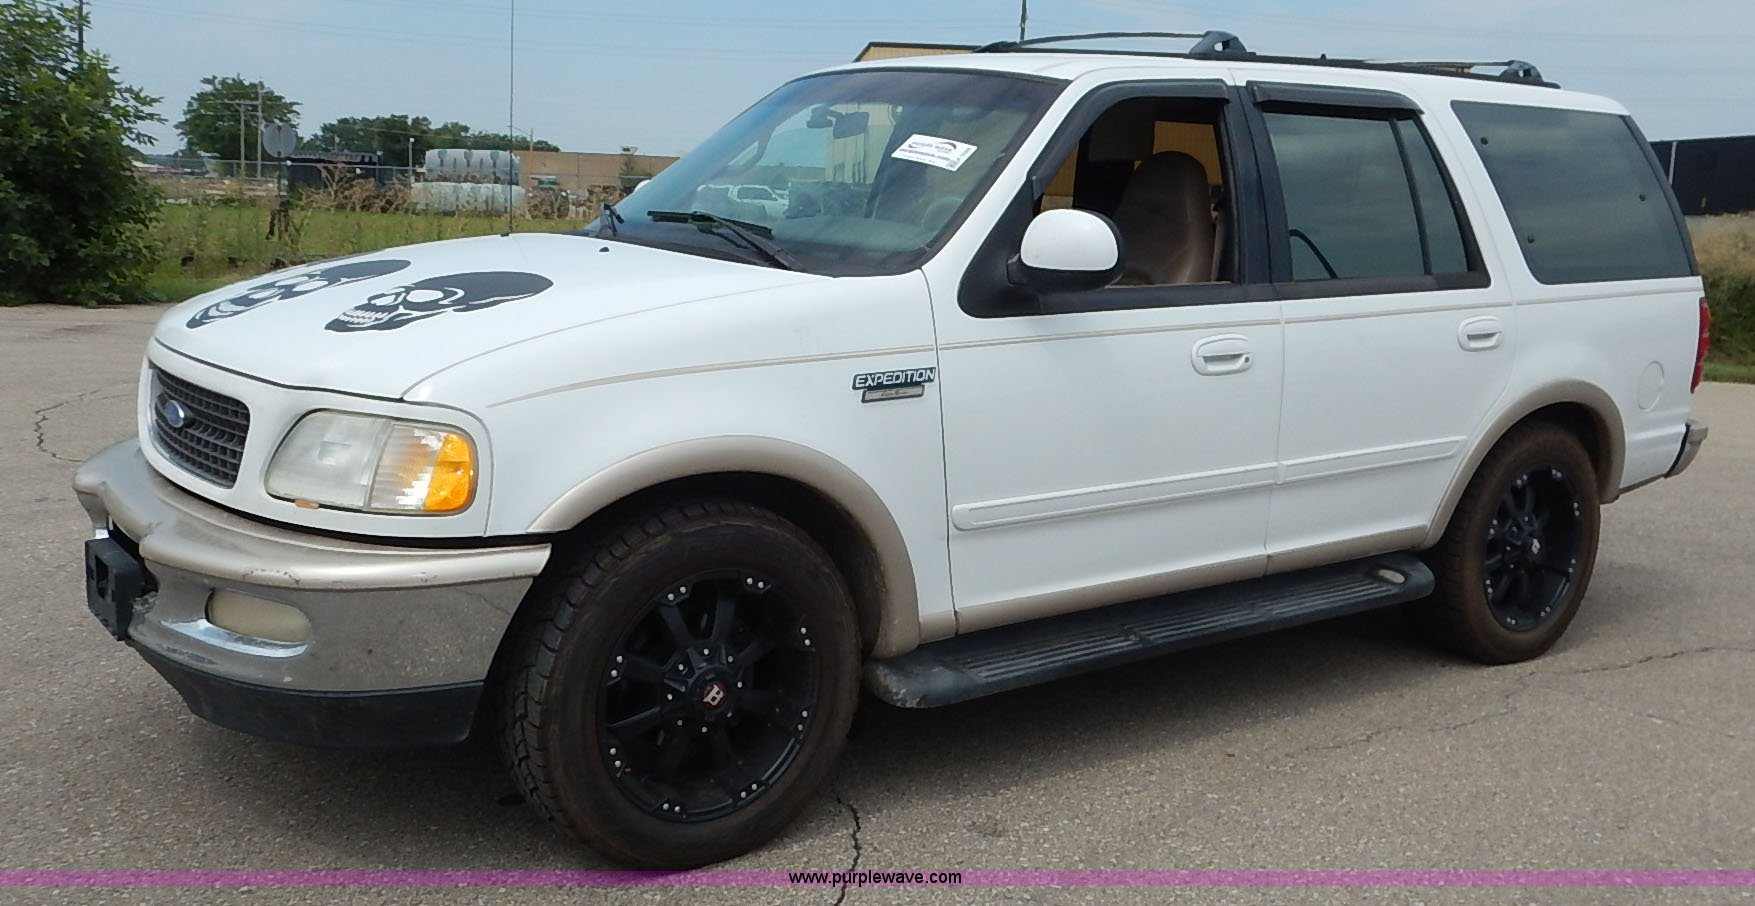 K1529 image for item k1529 1997 ford expedition